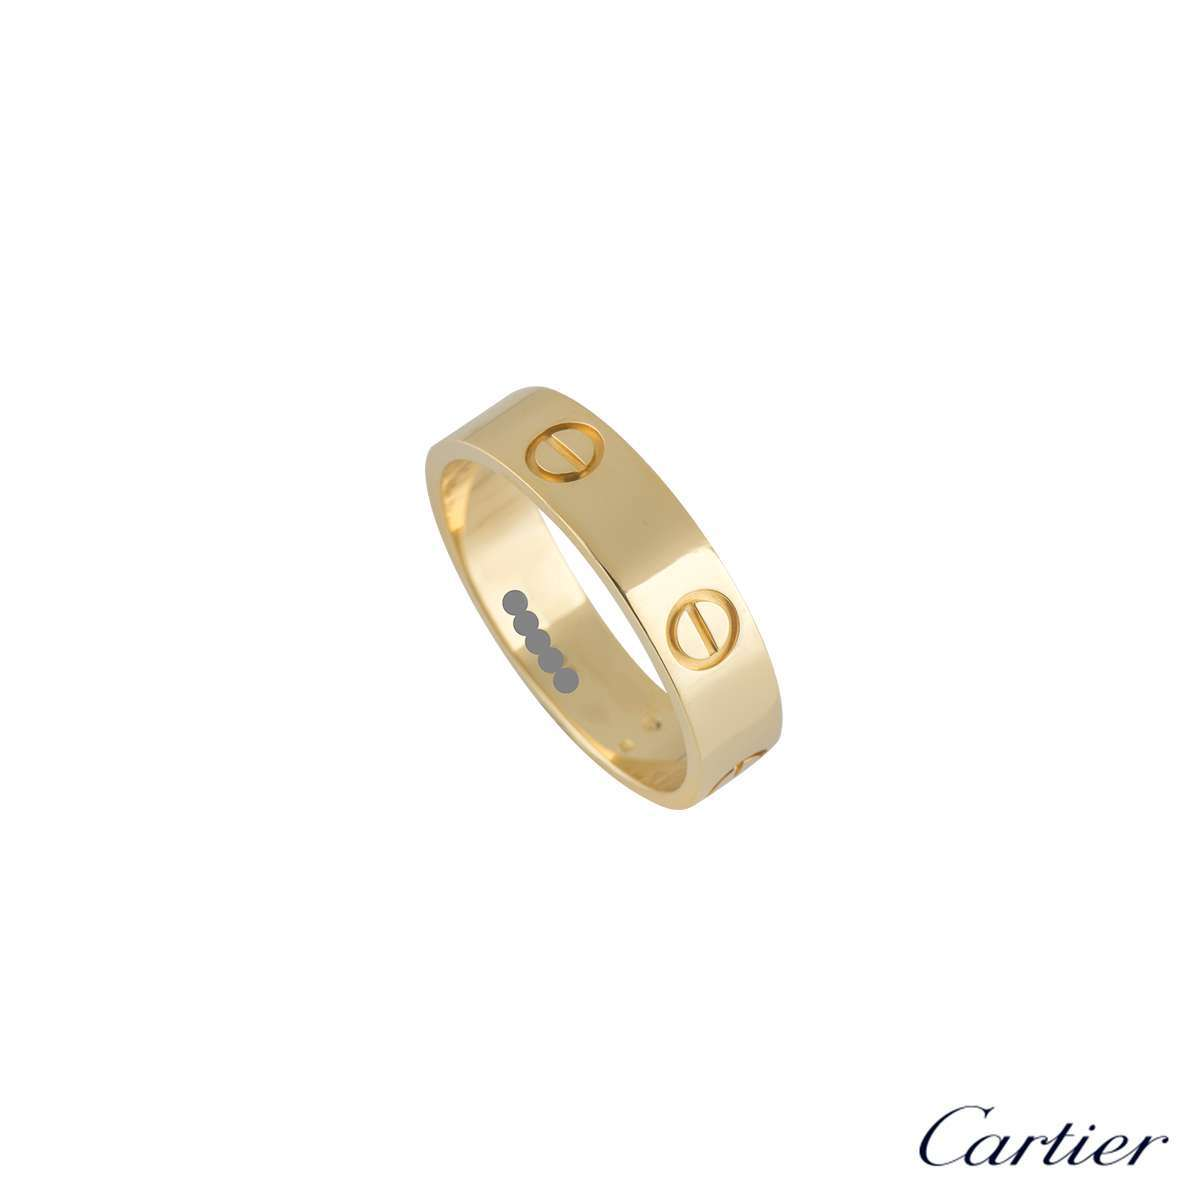 Cartier Yellow Gold Love Ring Size 61B4084661